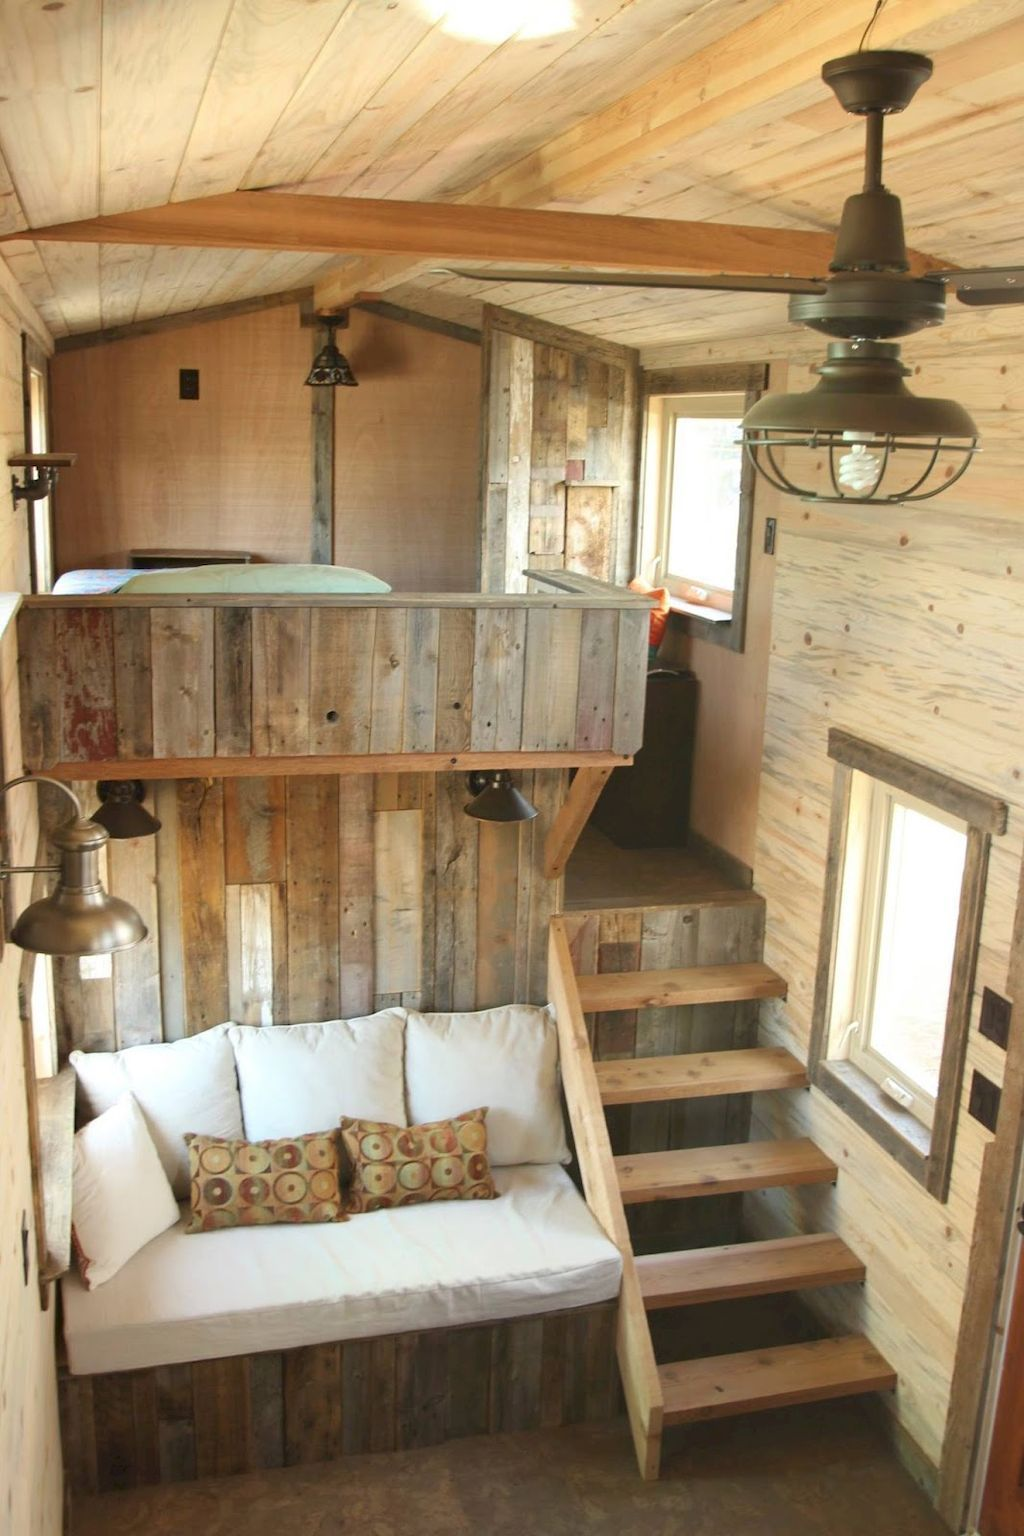 Cute Home Ideas 65 Cute Tiny House Ideas And Organization Tips 64 House